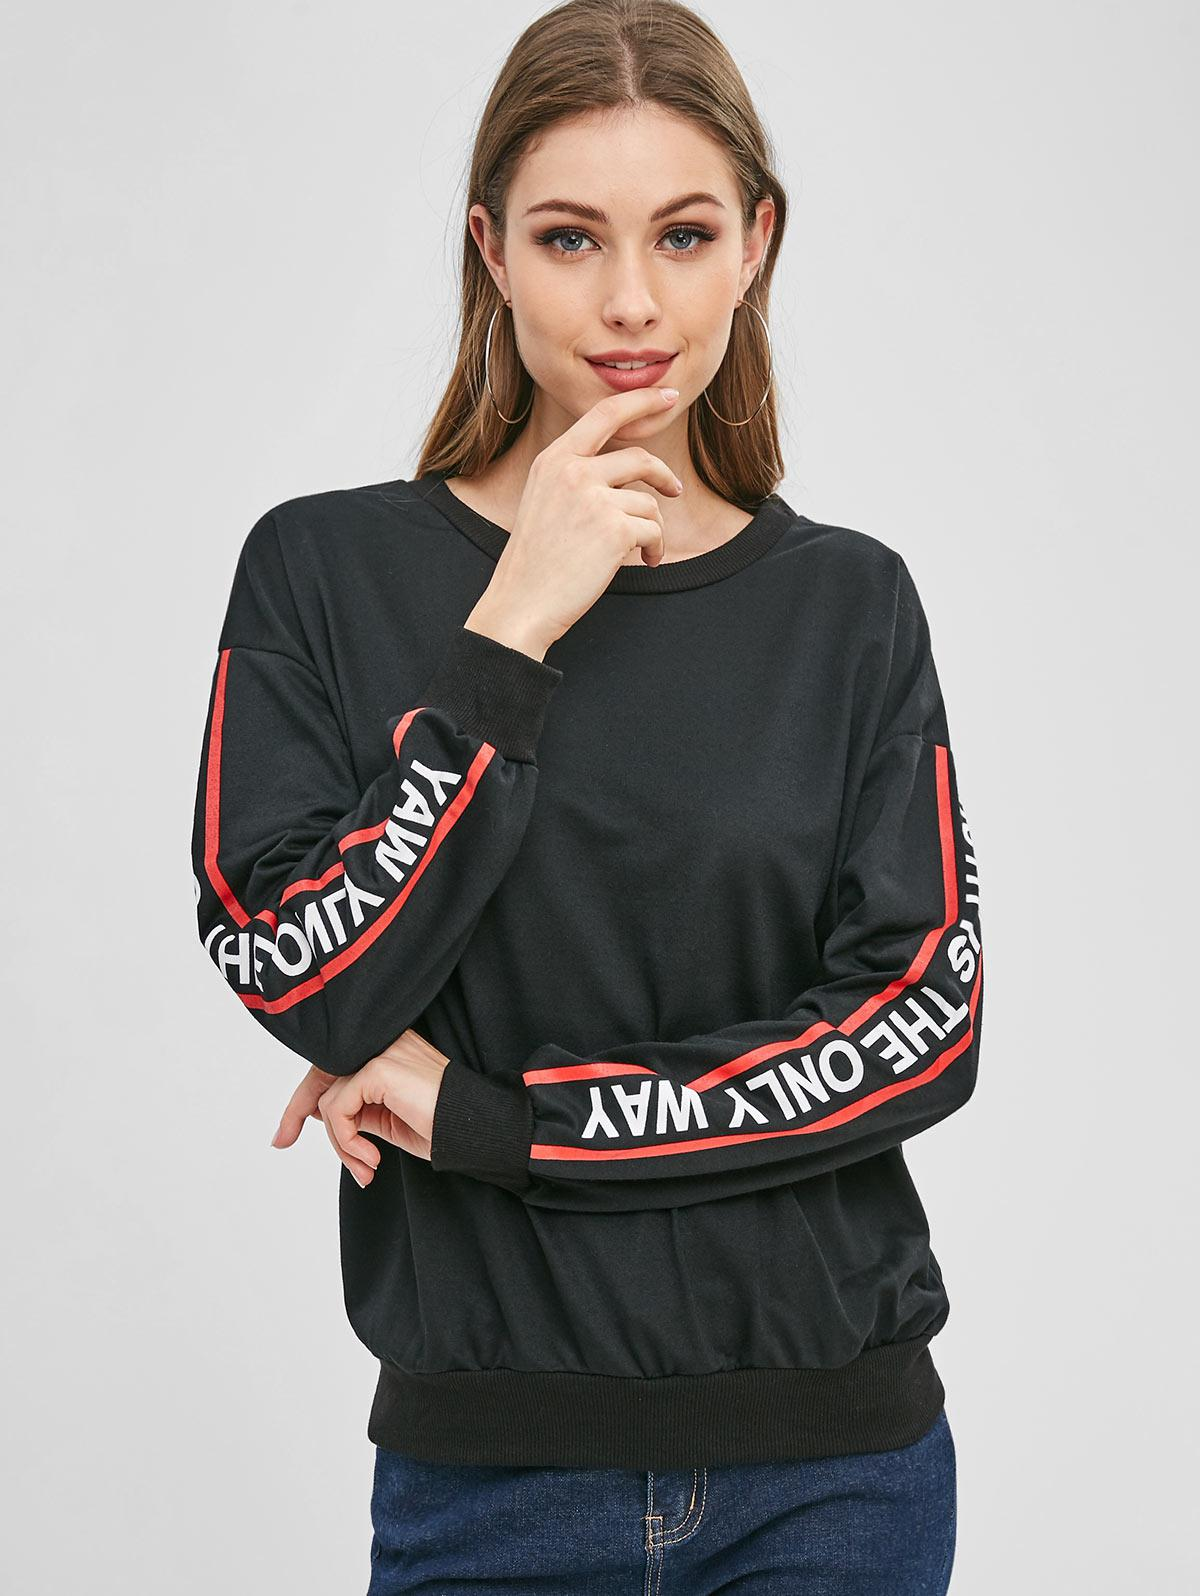 Pullover Graphic Sleeve Athletic Sweatshirt фото